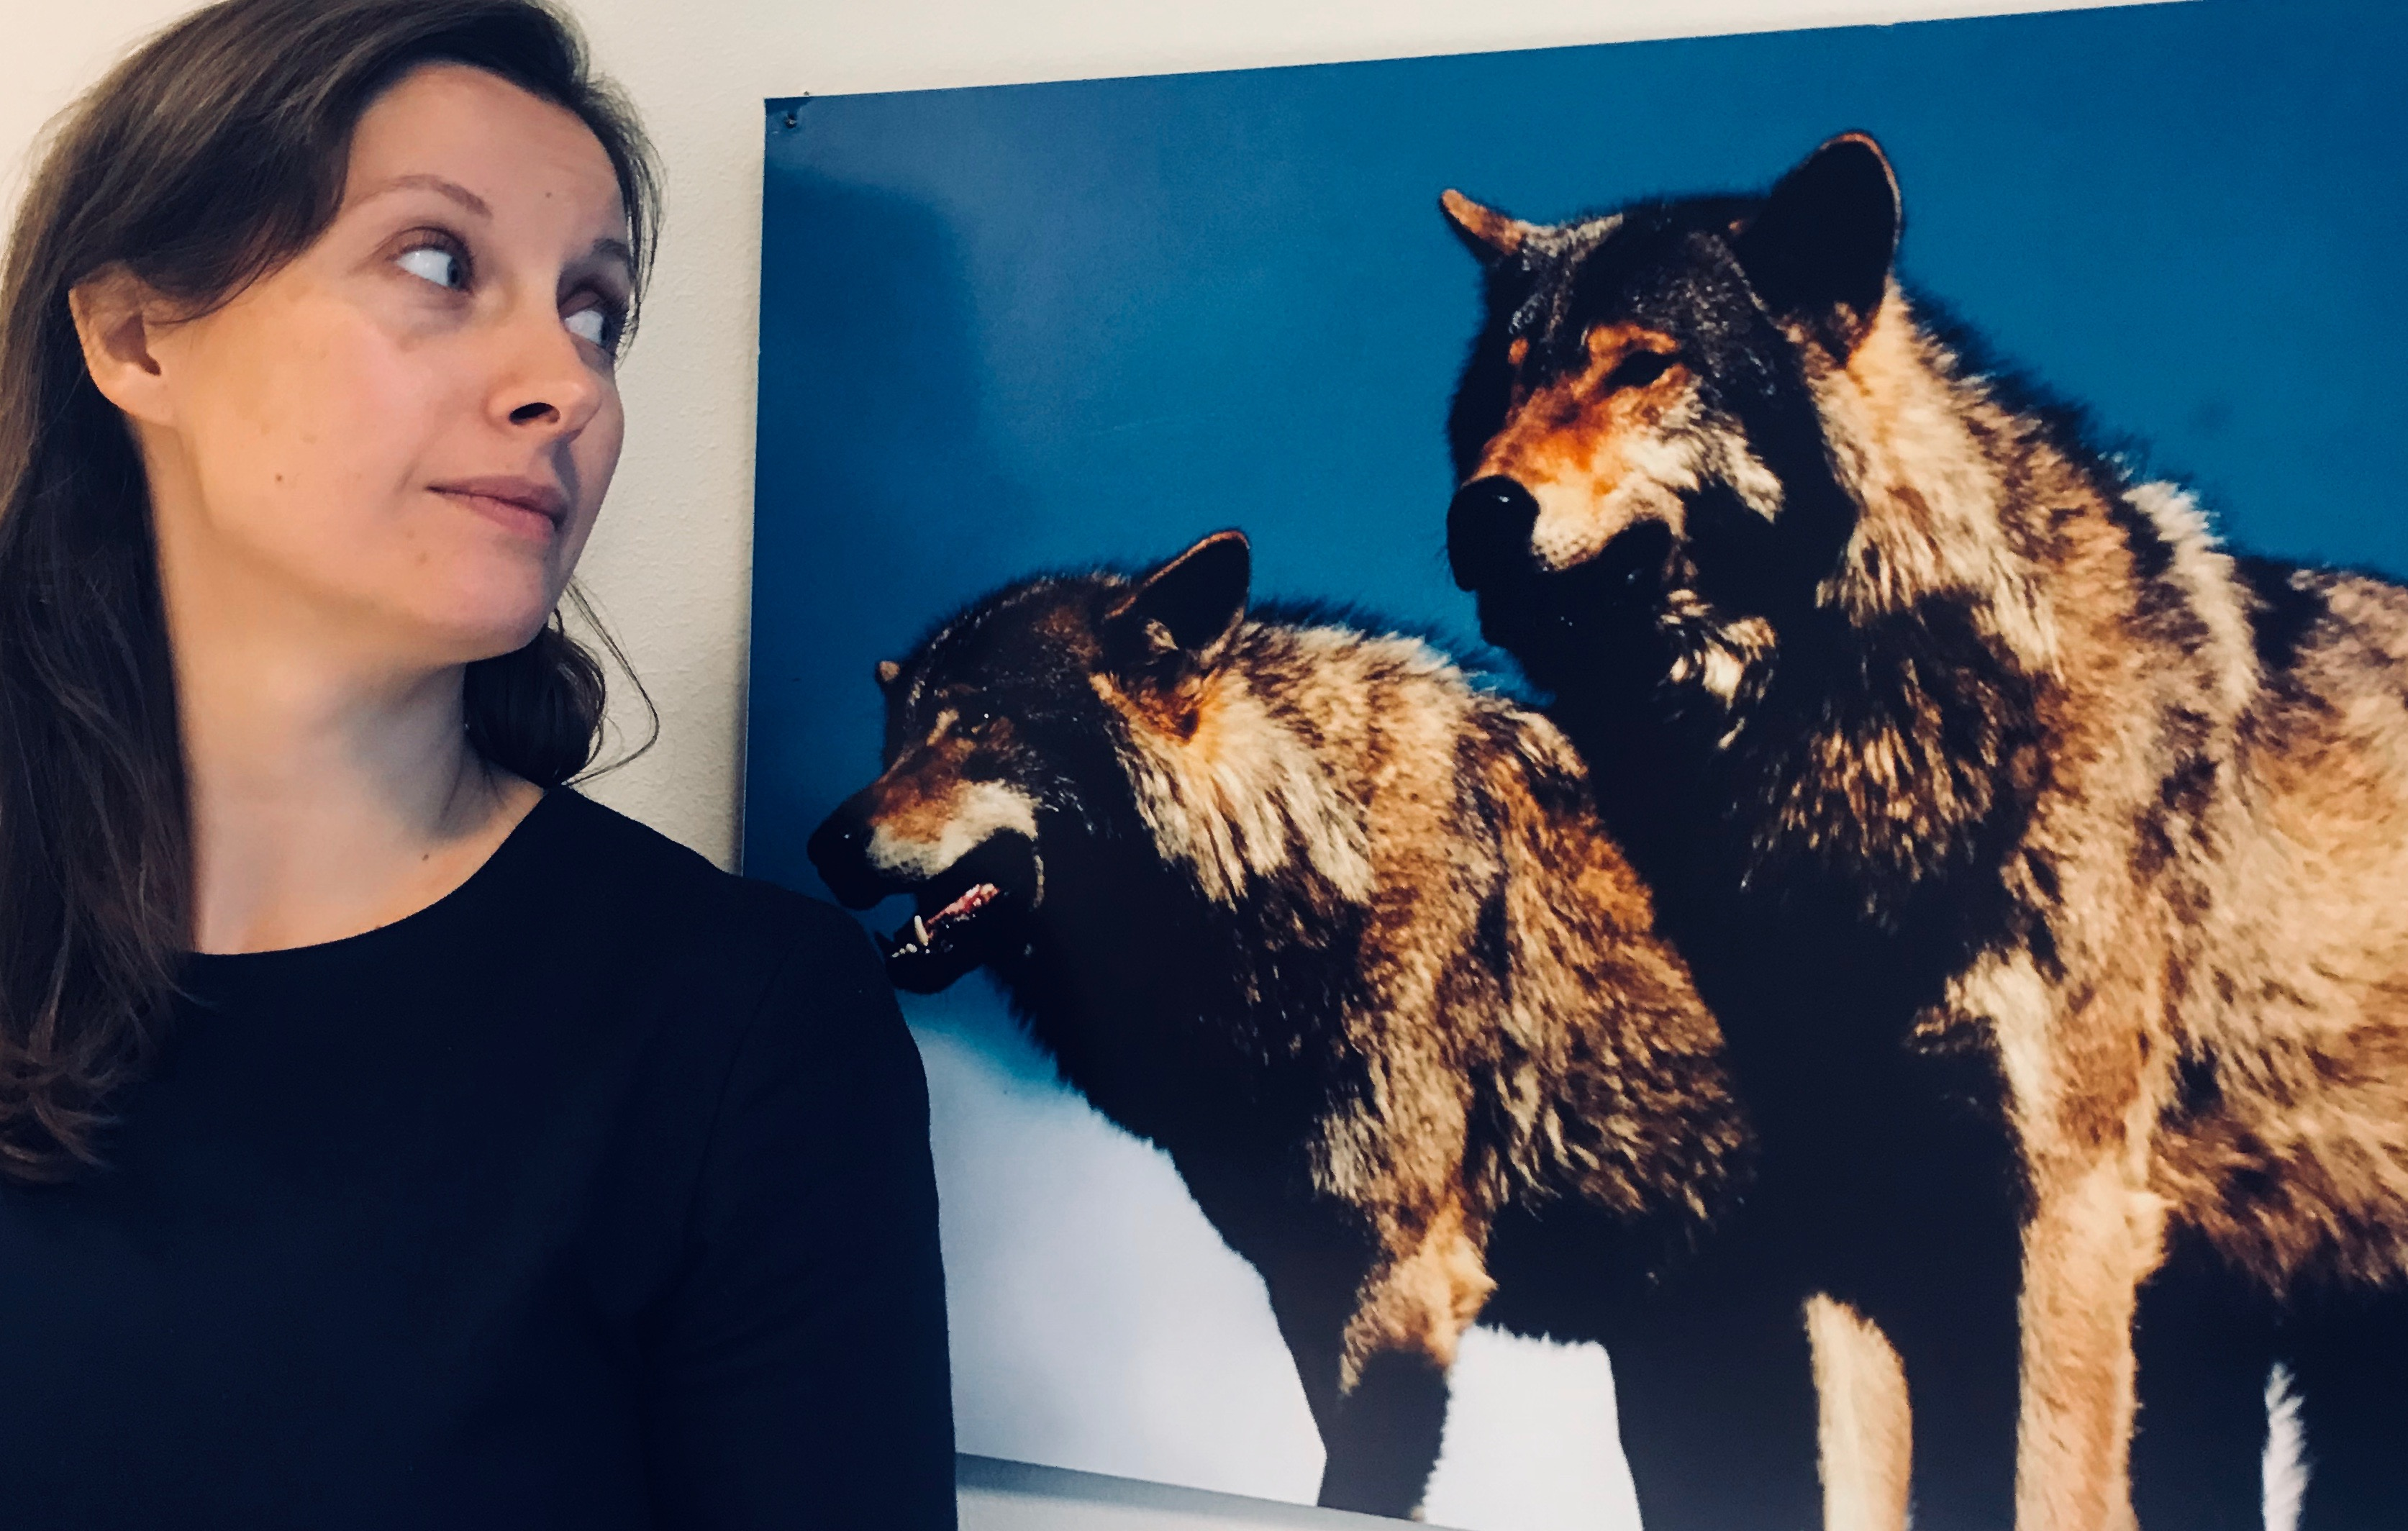 WWF's Ingrid Lomelde wants to protect Norwegian wolves